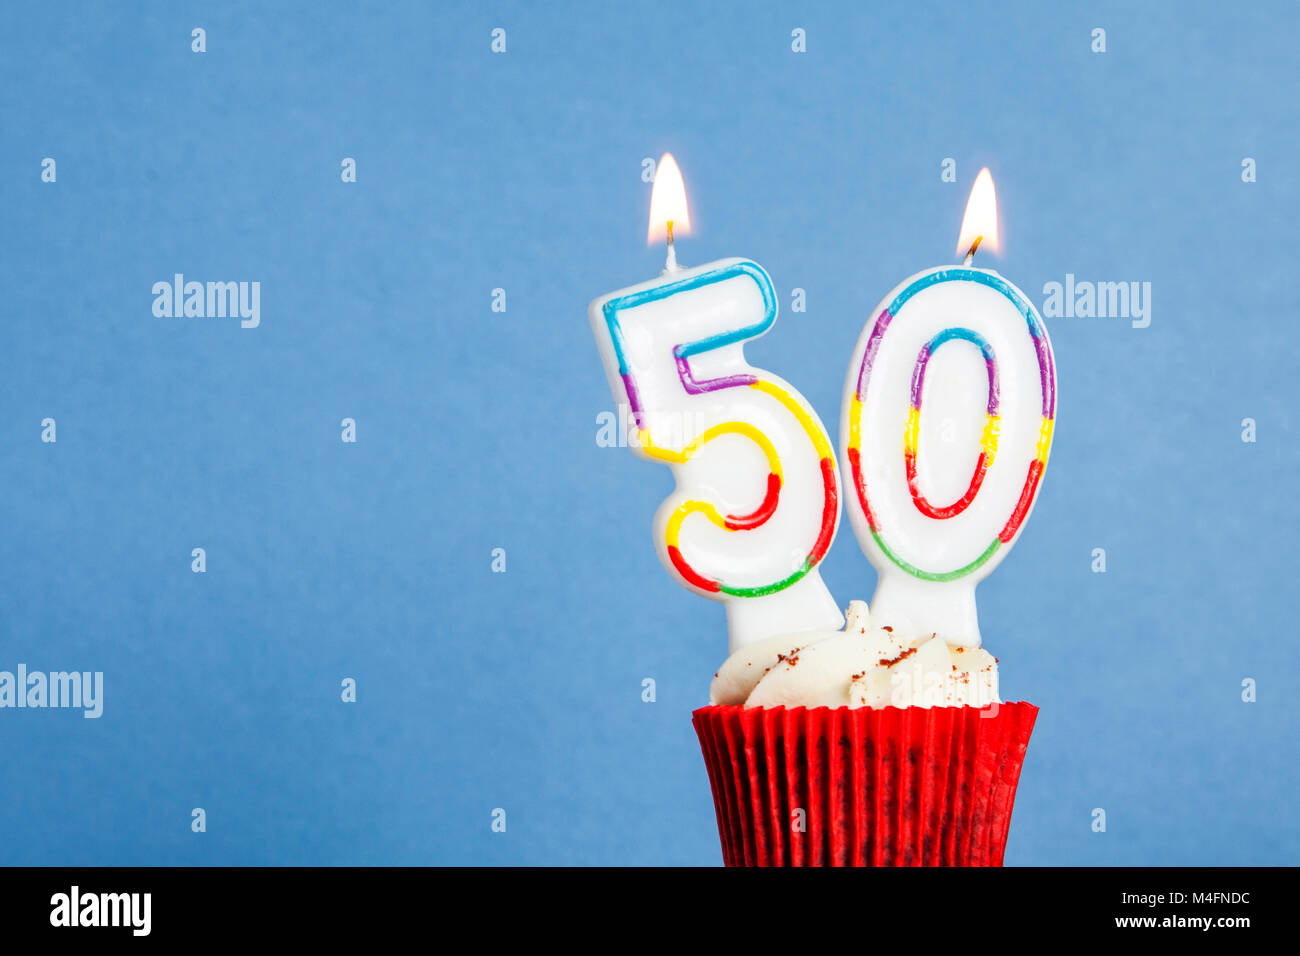 Number 50 Birthday Candle In A Cupcake Against Blue Background